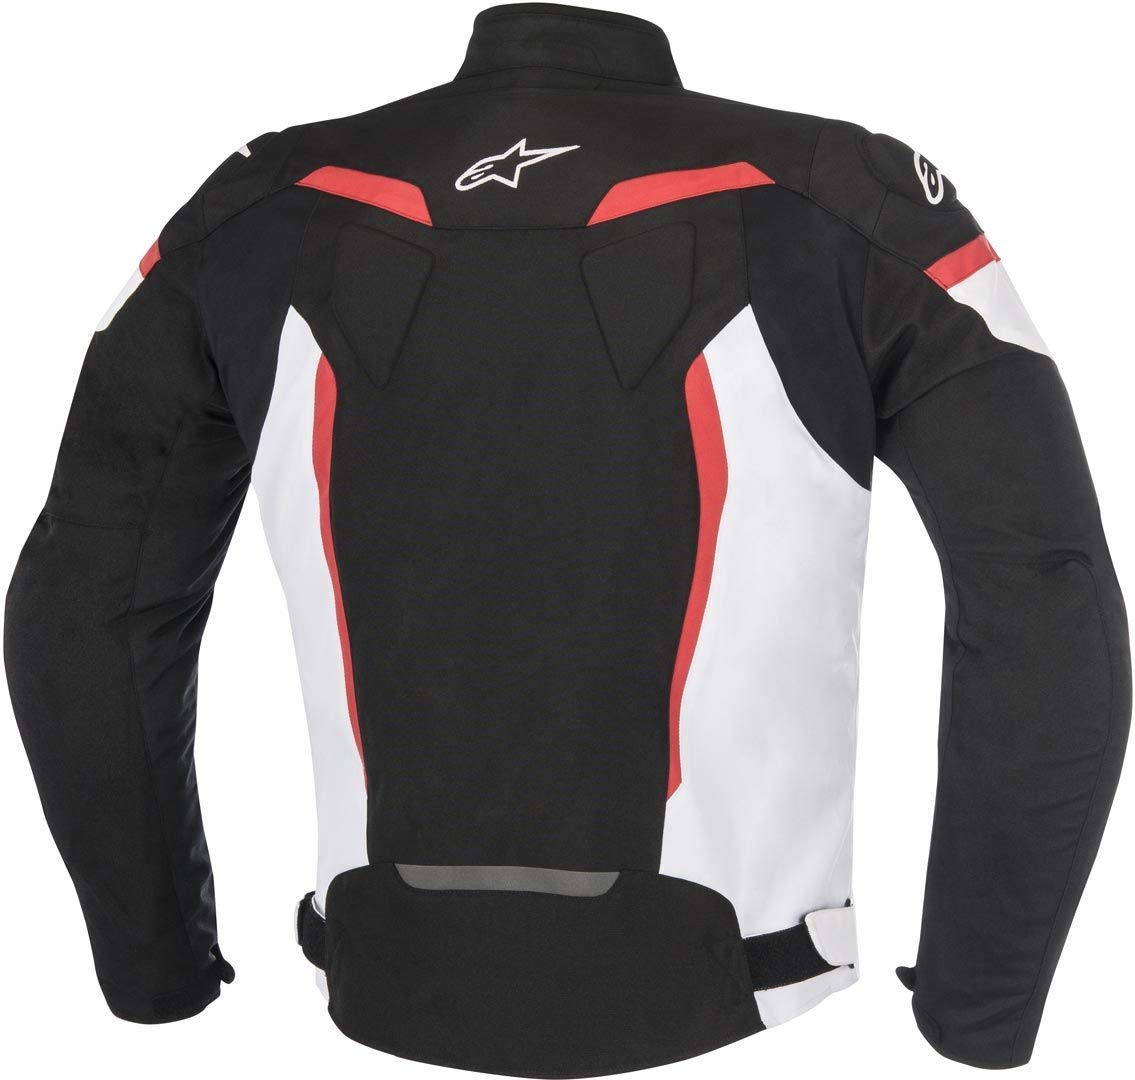 Chaqueta de moto Alpinestars T-GP Plus R V2: Amazon.es ...